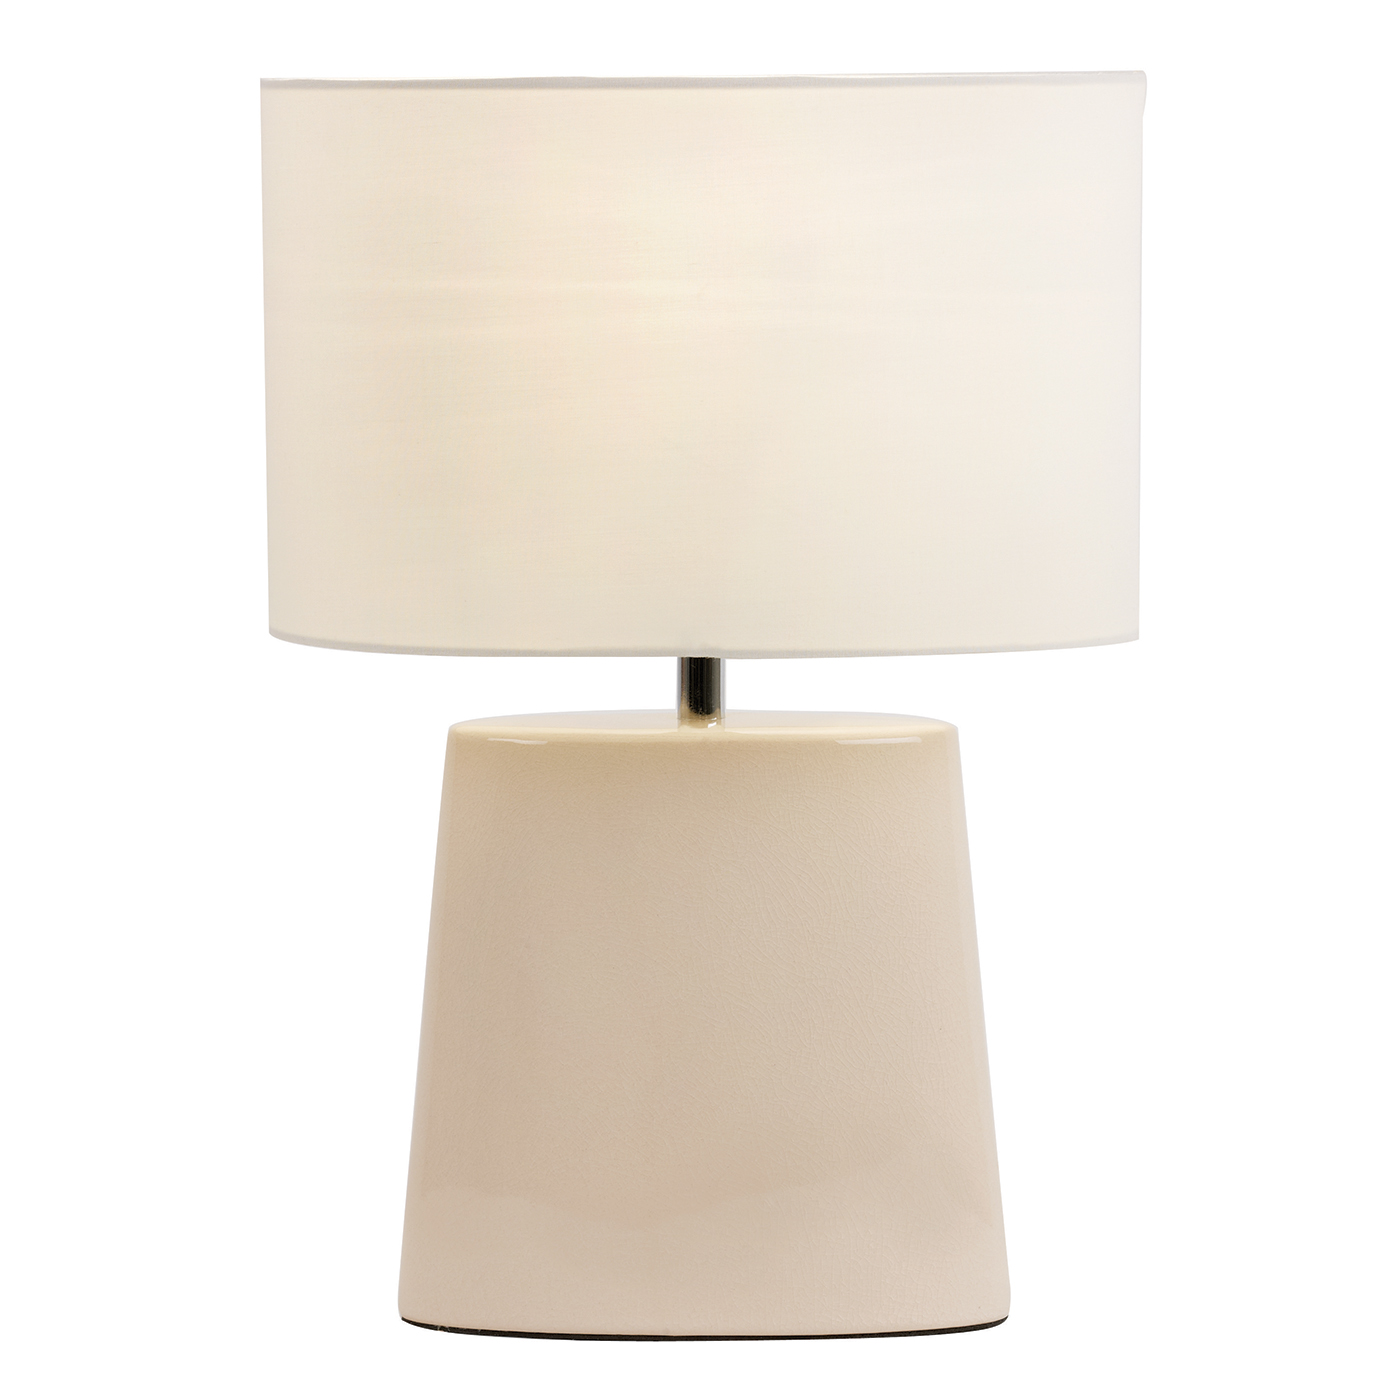 Endon Iris table lamp 60W Cream crackle glaze & cream tc fabric